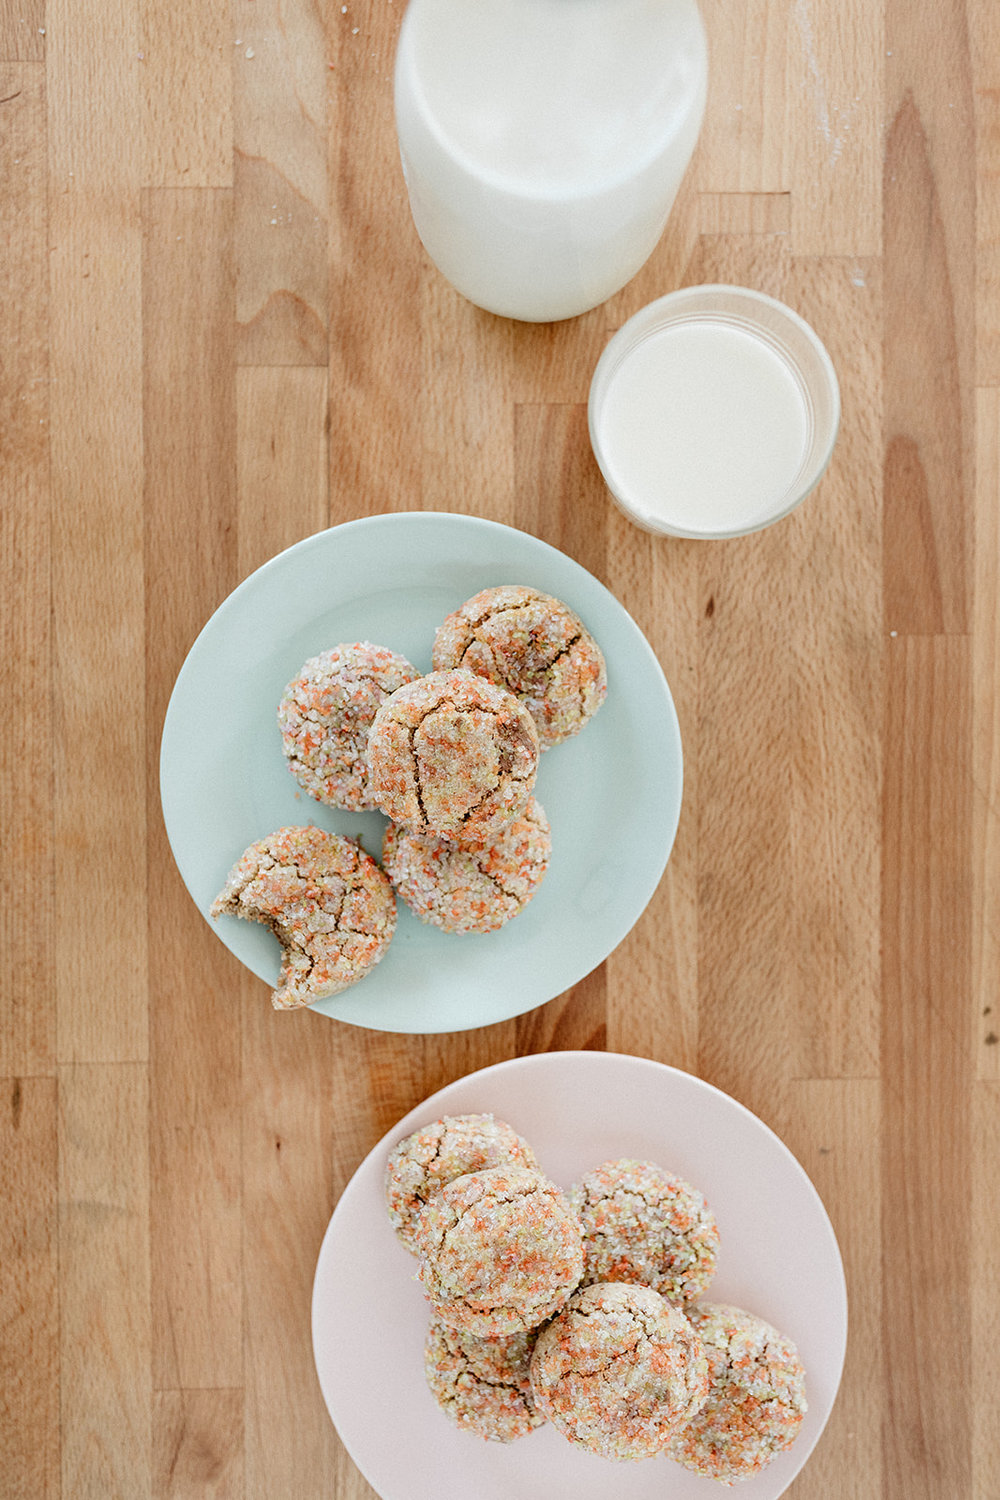 1-31-19-molly-yeh-passover-cookies-3.jpg